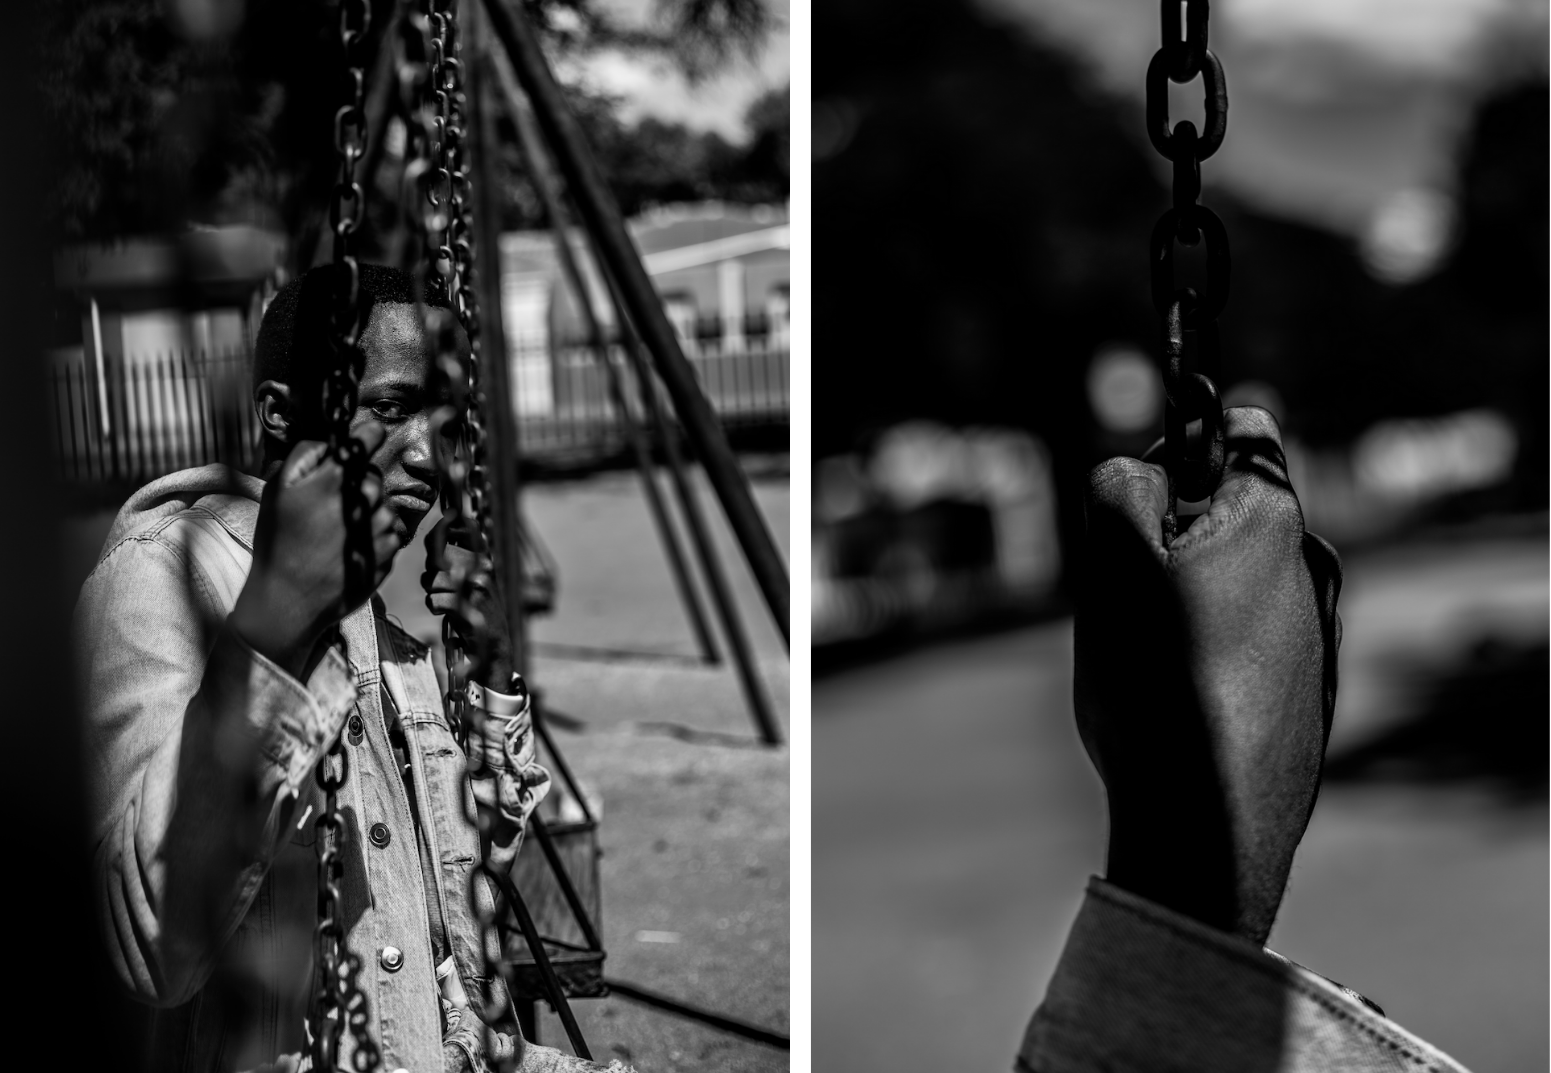 Young man sits alone on a swing, his hand gripping the chains either side of his face